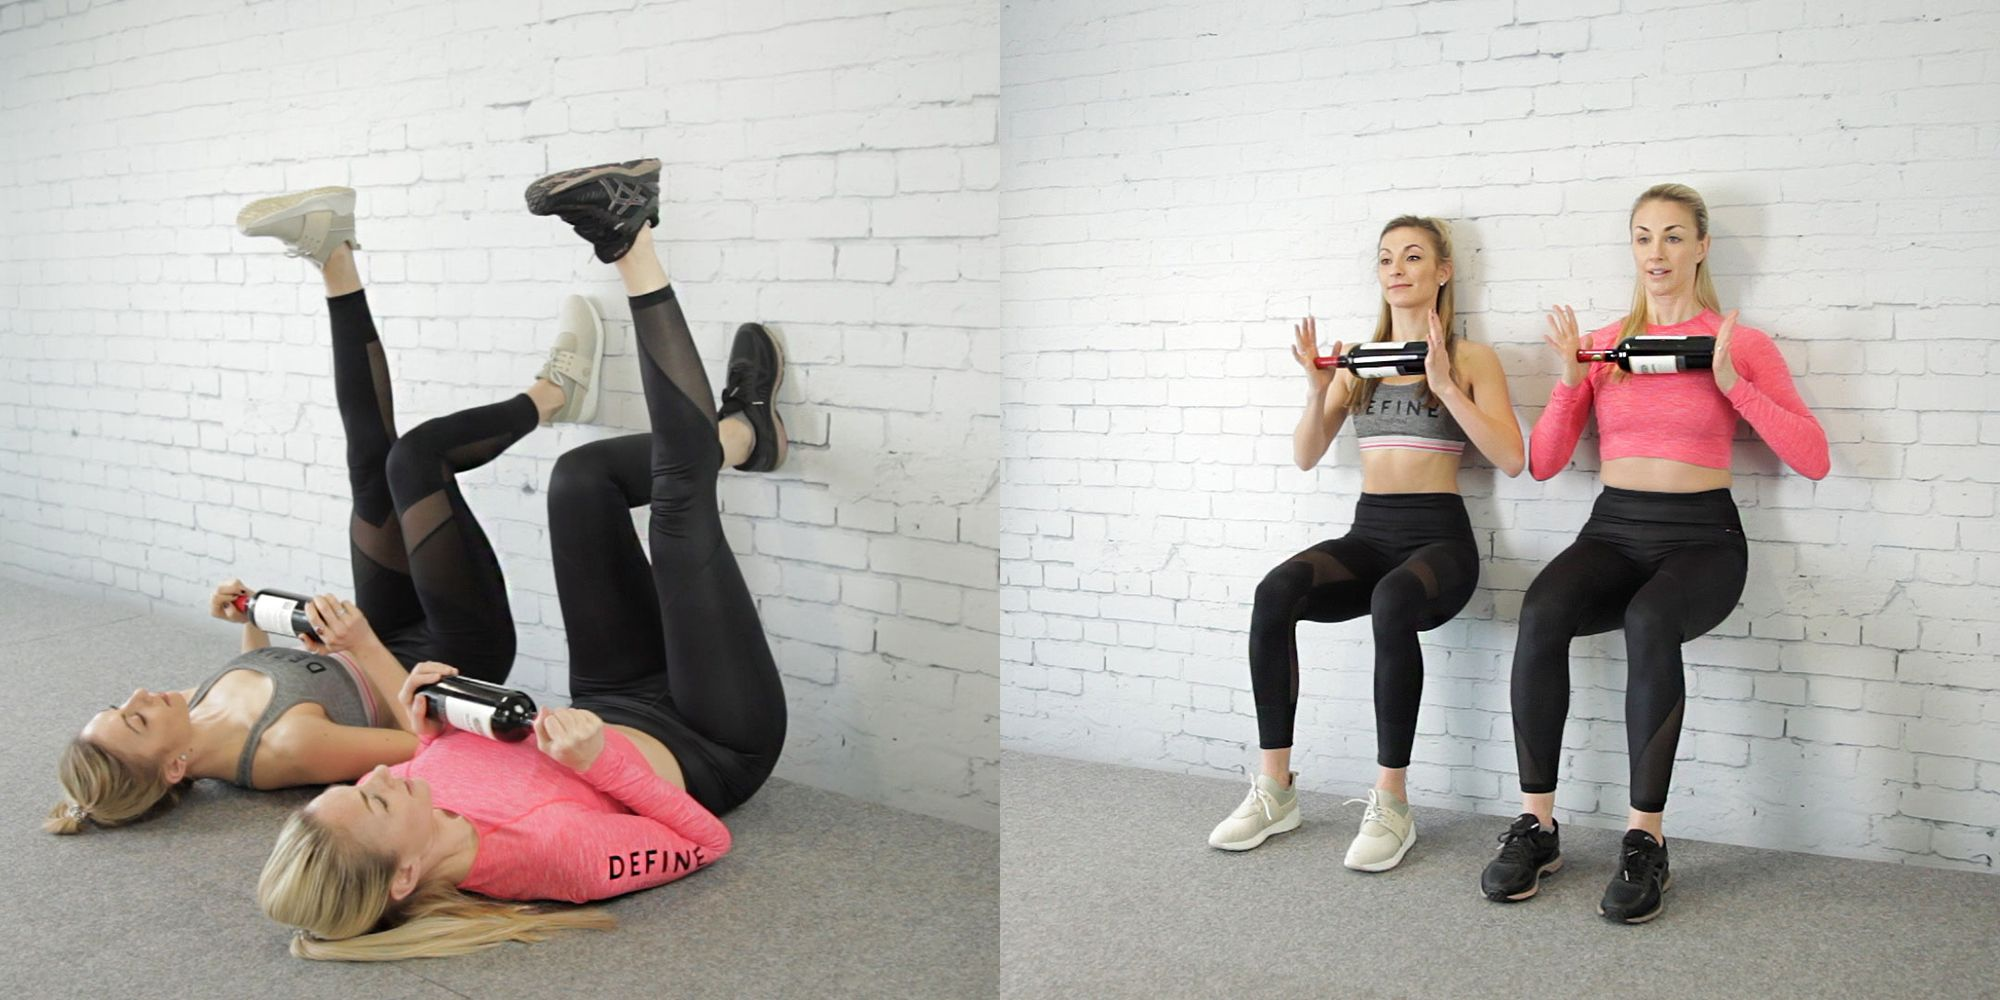 11 workouts using wine bottles instead of weights